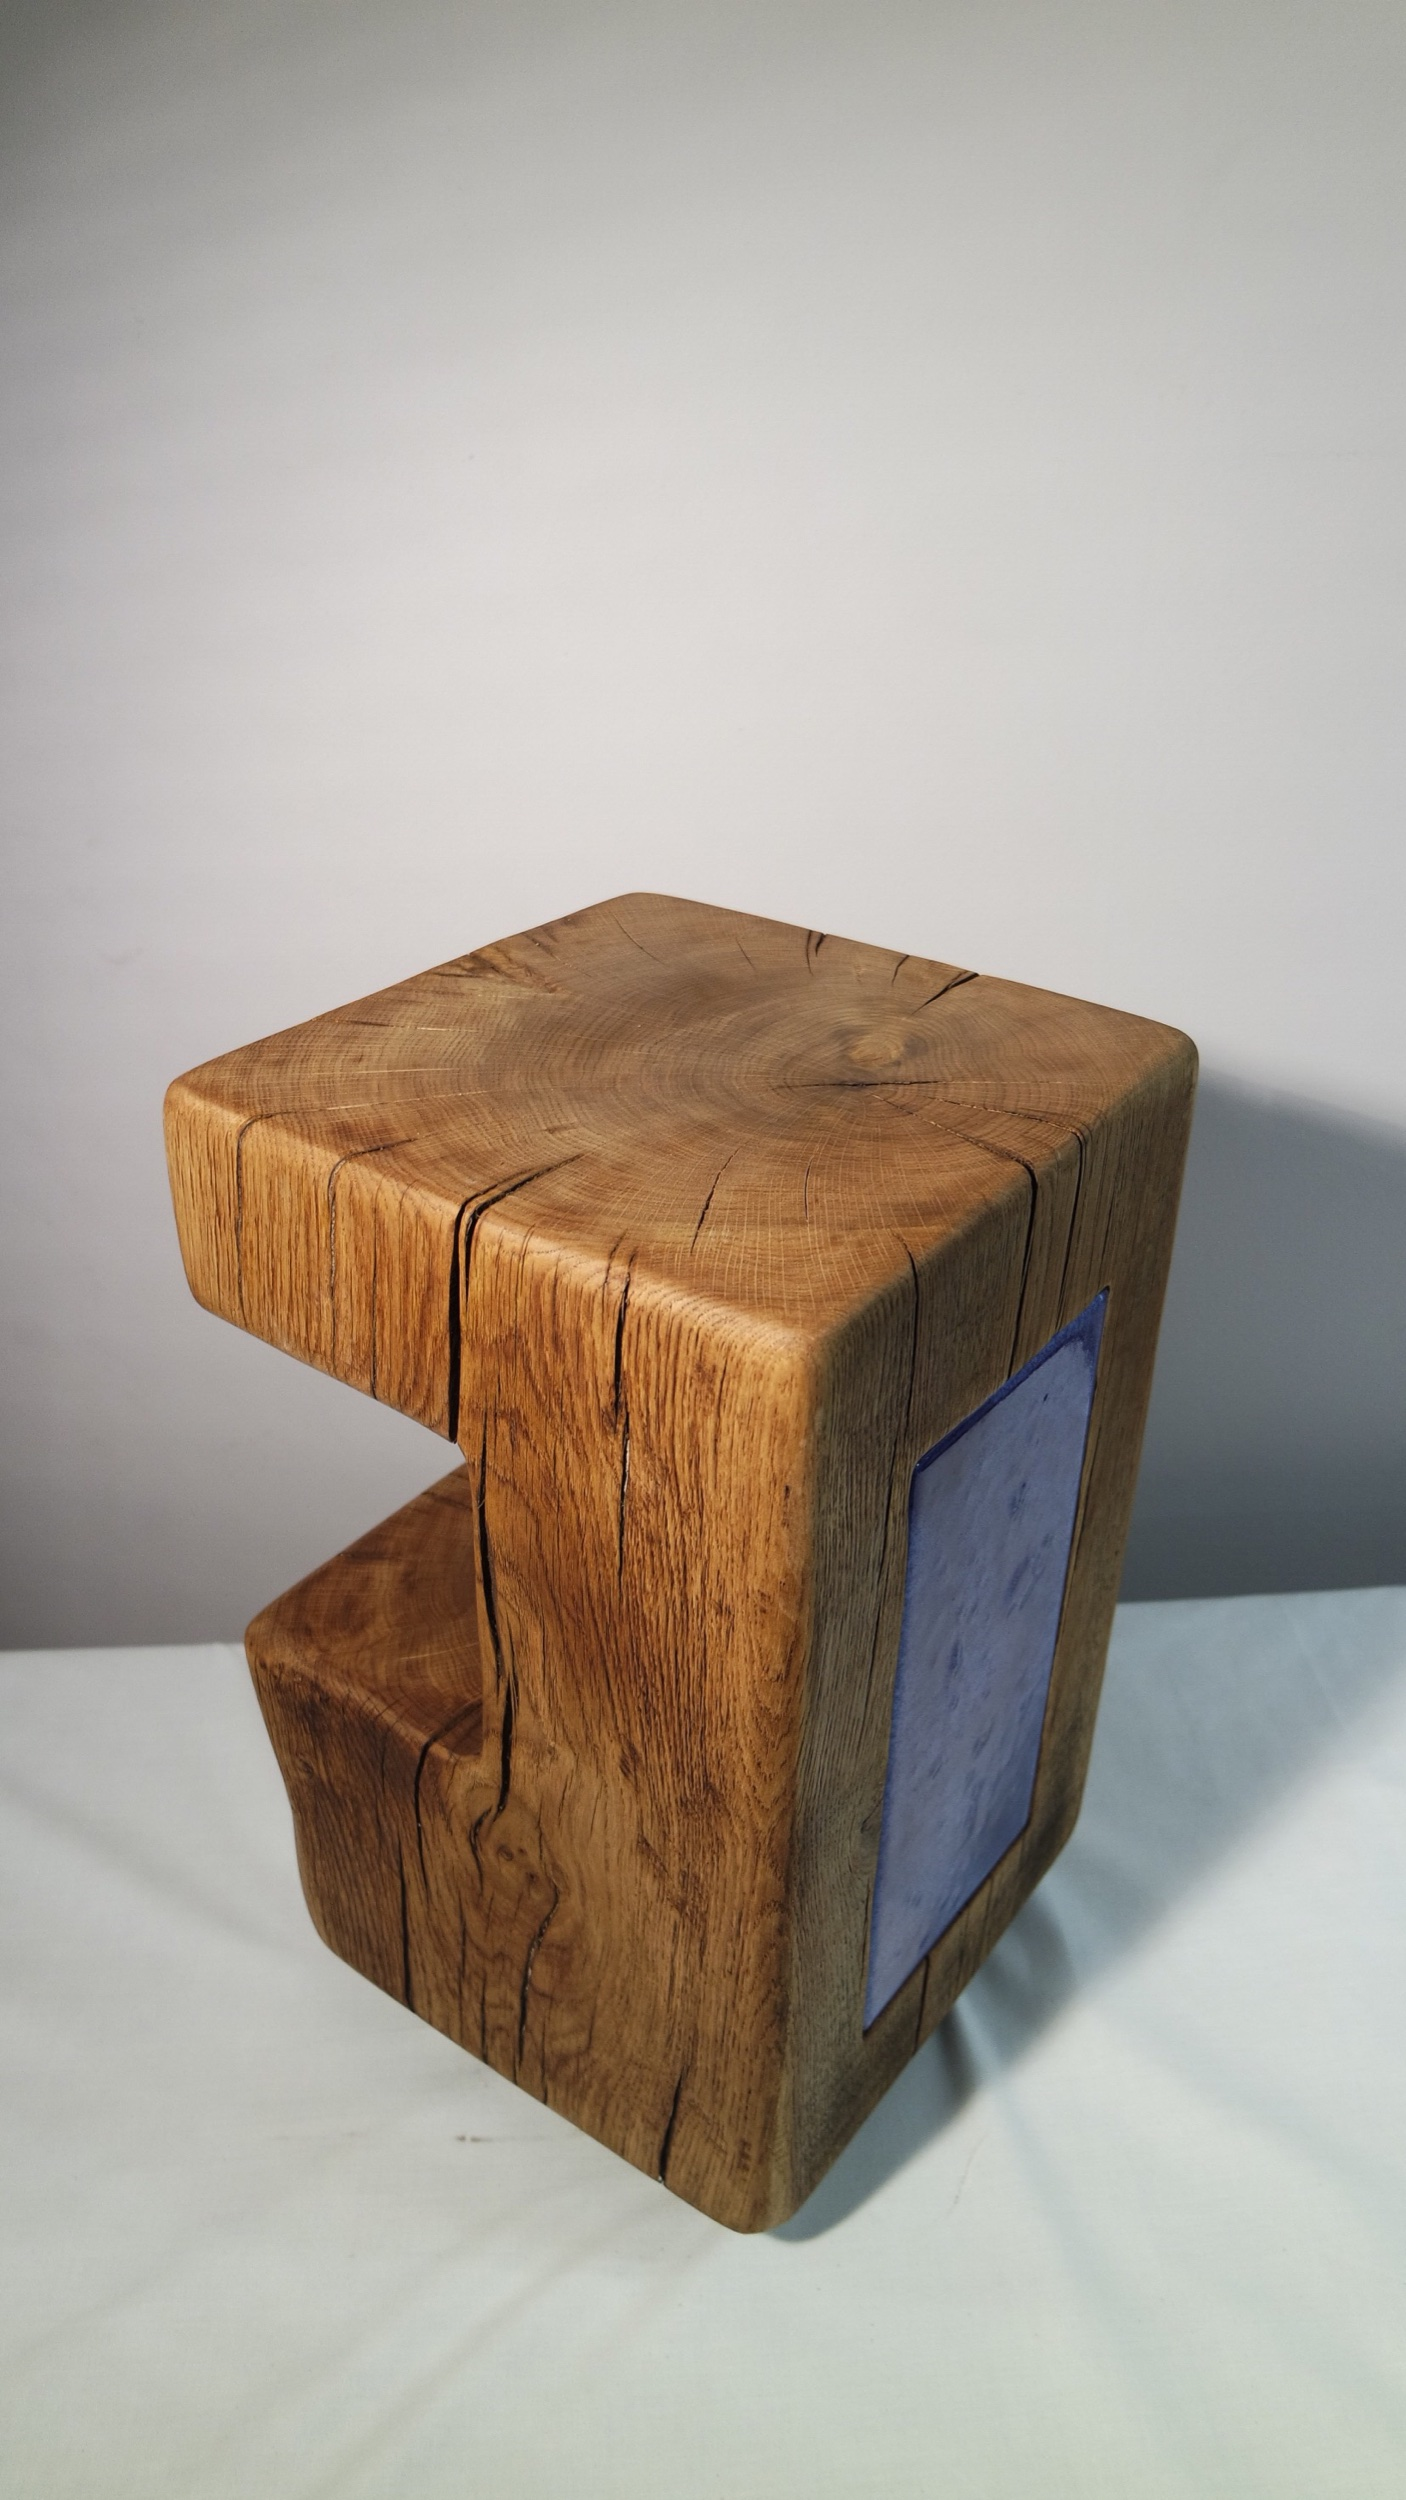 Oak side table showing the hand made blue glass insert